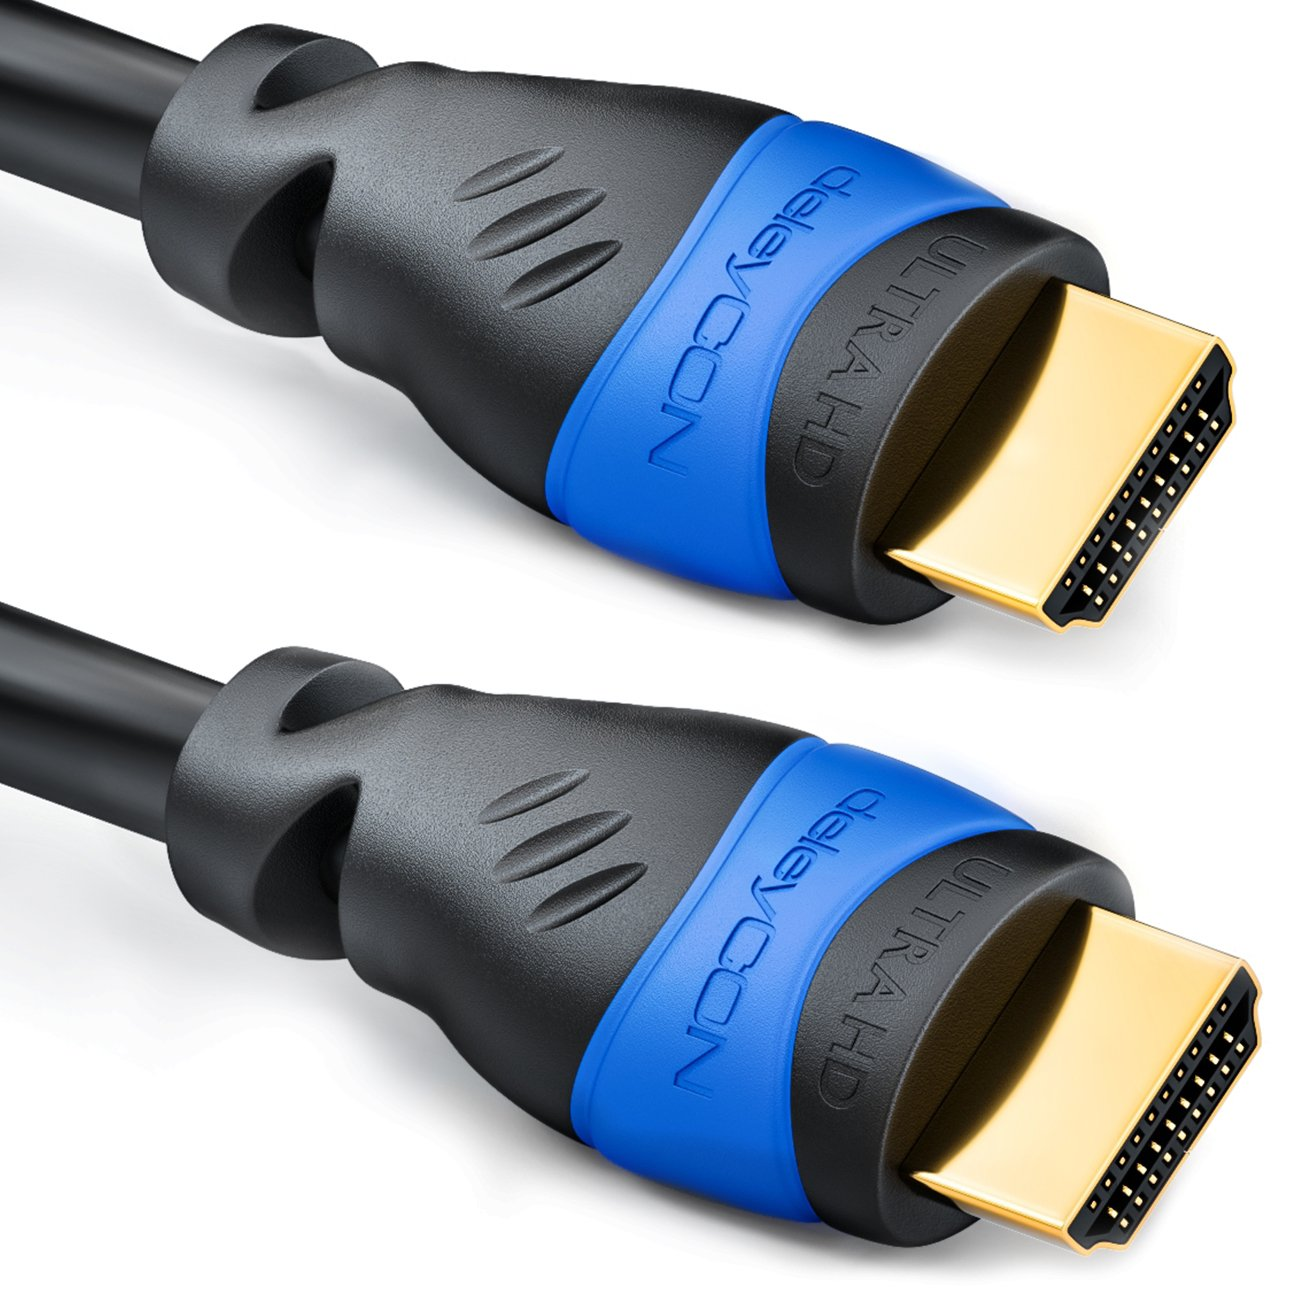 deleyCON MK03- Cable HDMI 2.0 (2 m, HDMI 1.4a, ULTRA HD